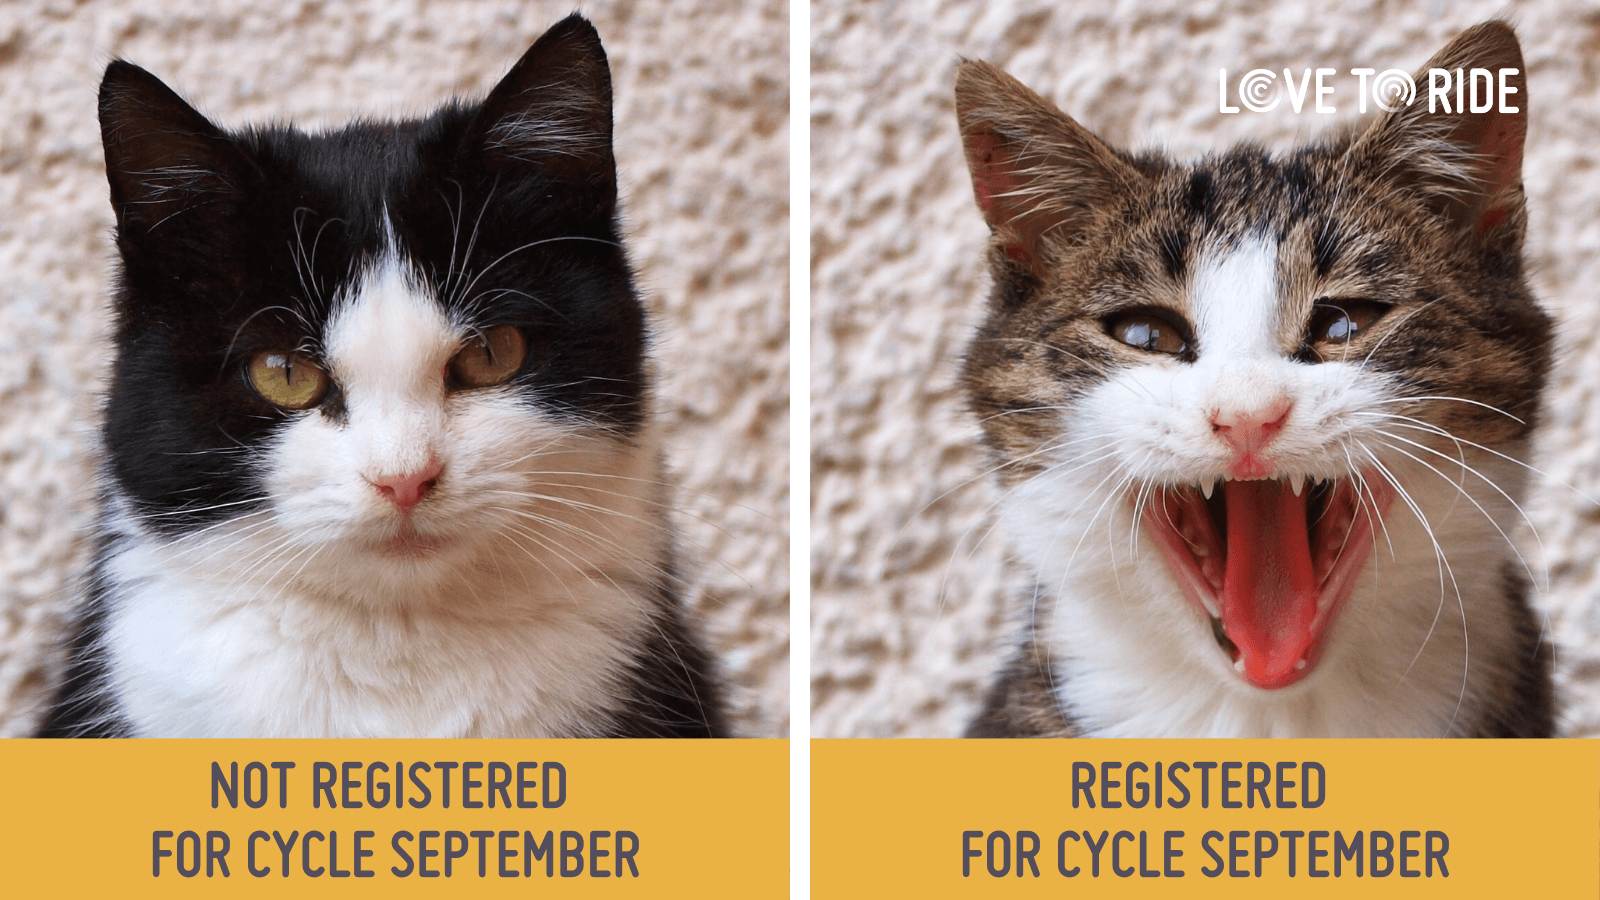 On the left, a cat with a slightly grumpy face. Underneath it says 'not registered for Cycle September'. On the right, a cat with a wide open mouth which gives the impression of an excited smile. Underneath it says 'registered for Cycle September'.